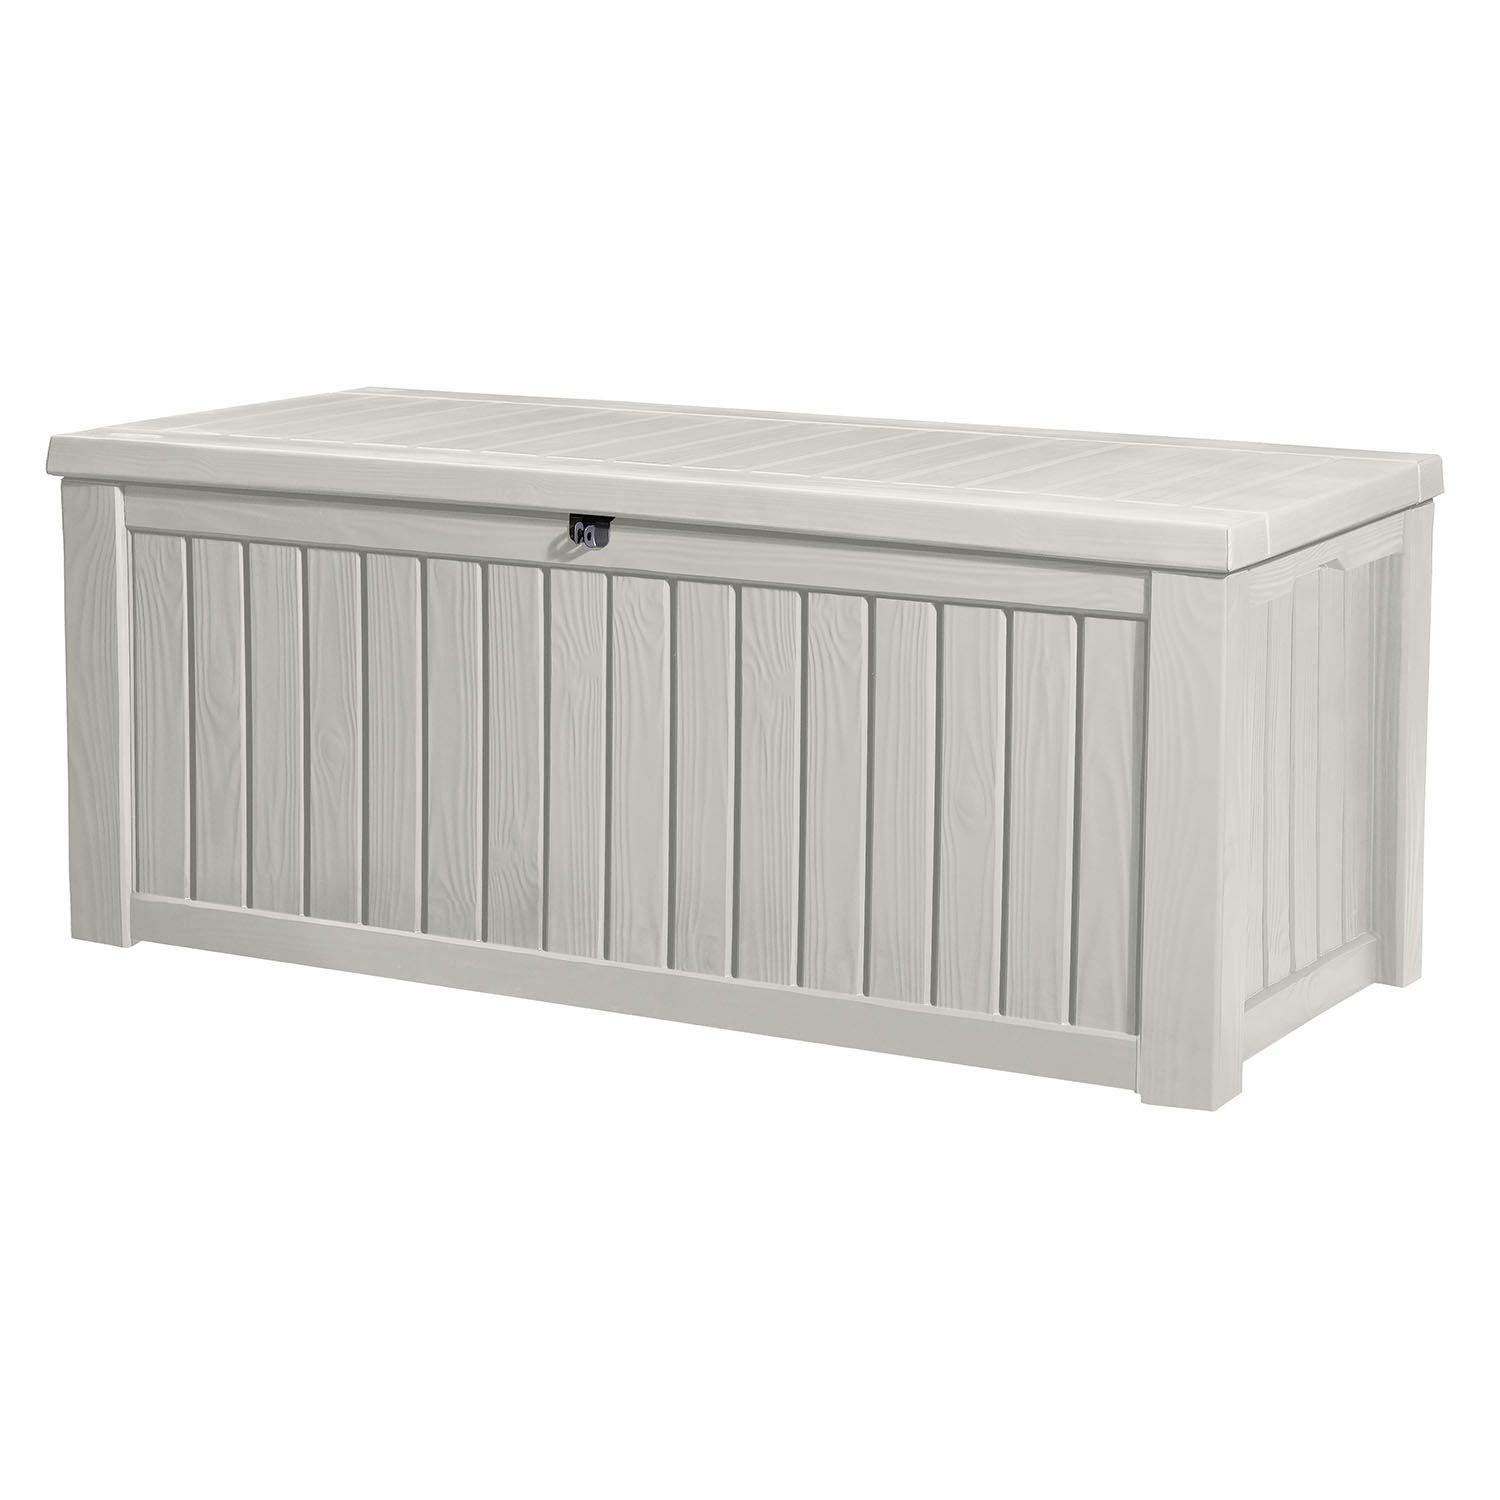 Keter Rockwood Jumbo 150 Gl 570 L White Outdoor Deck Storage Box Learn More By Deck Box Storage Outdoor Deck Storage Box Patio Furniture Cushion Storage